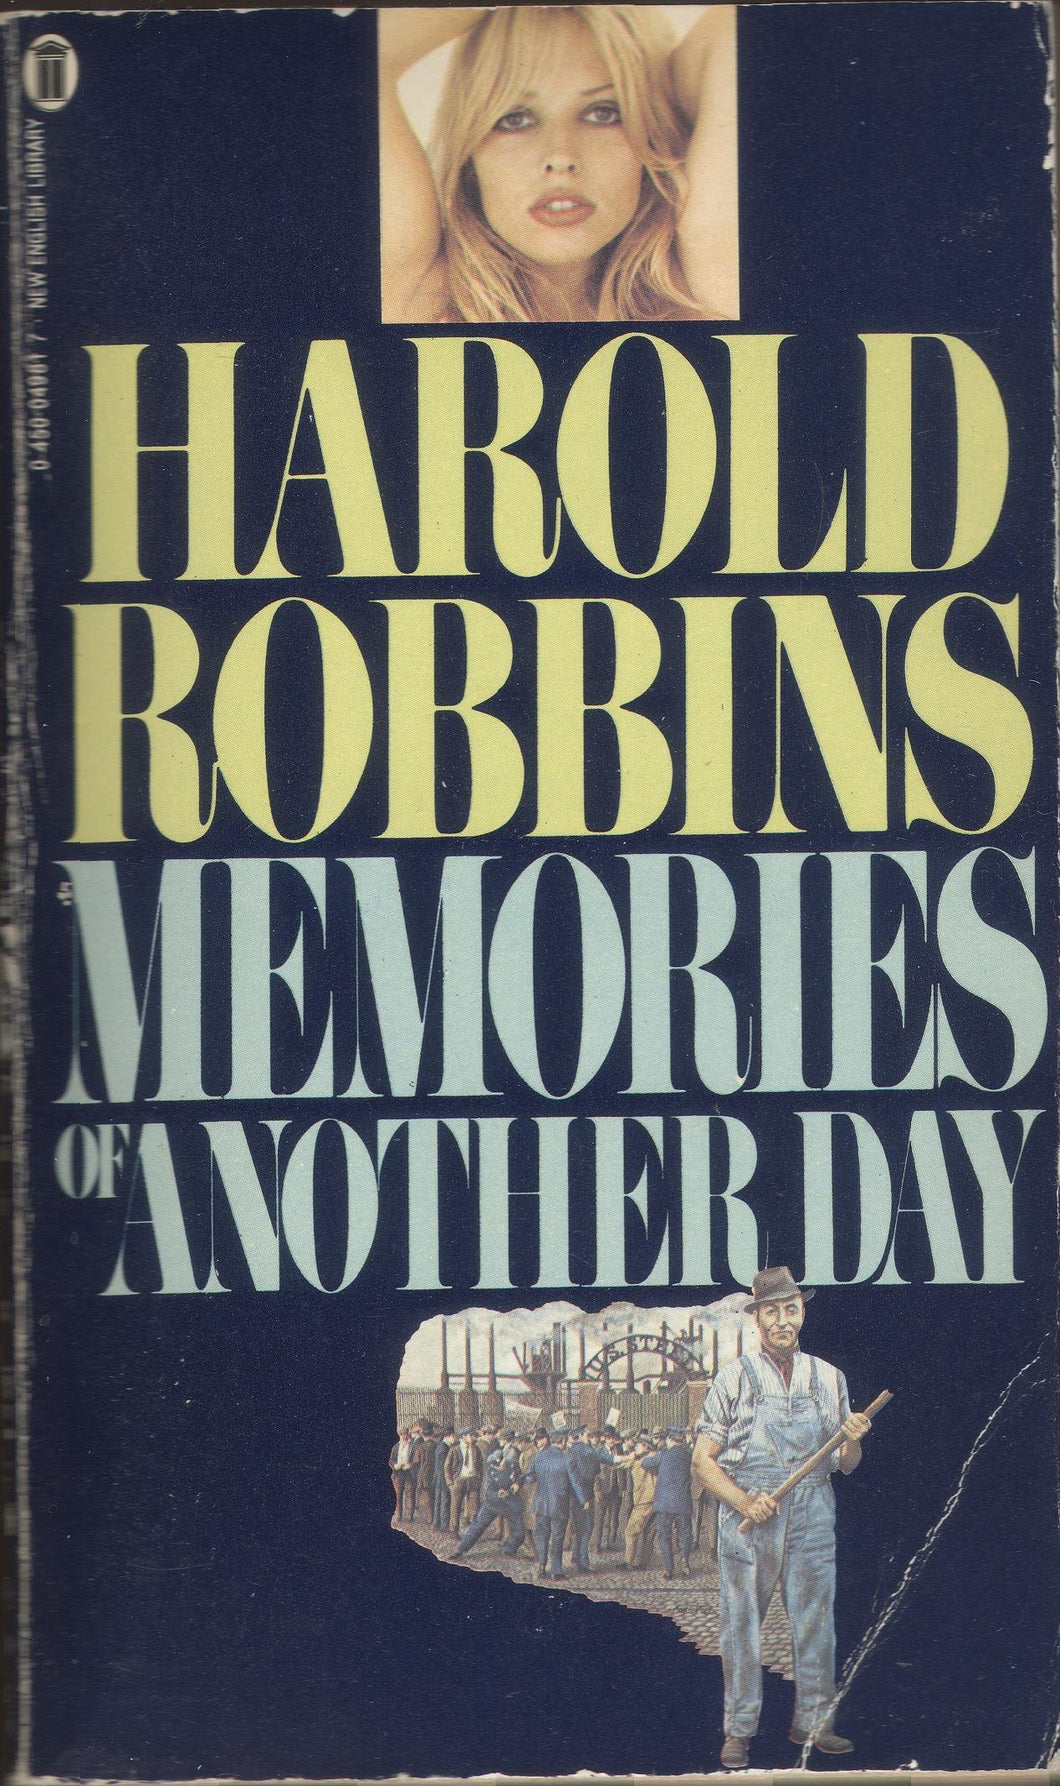 Memories of Another Day Robbins, Harold